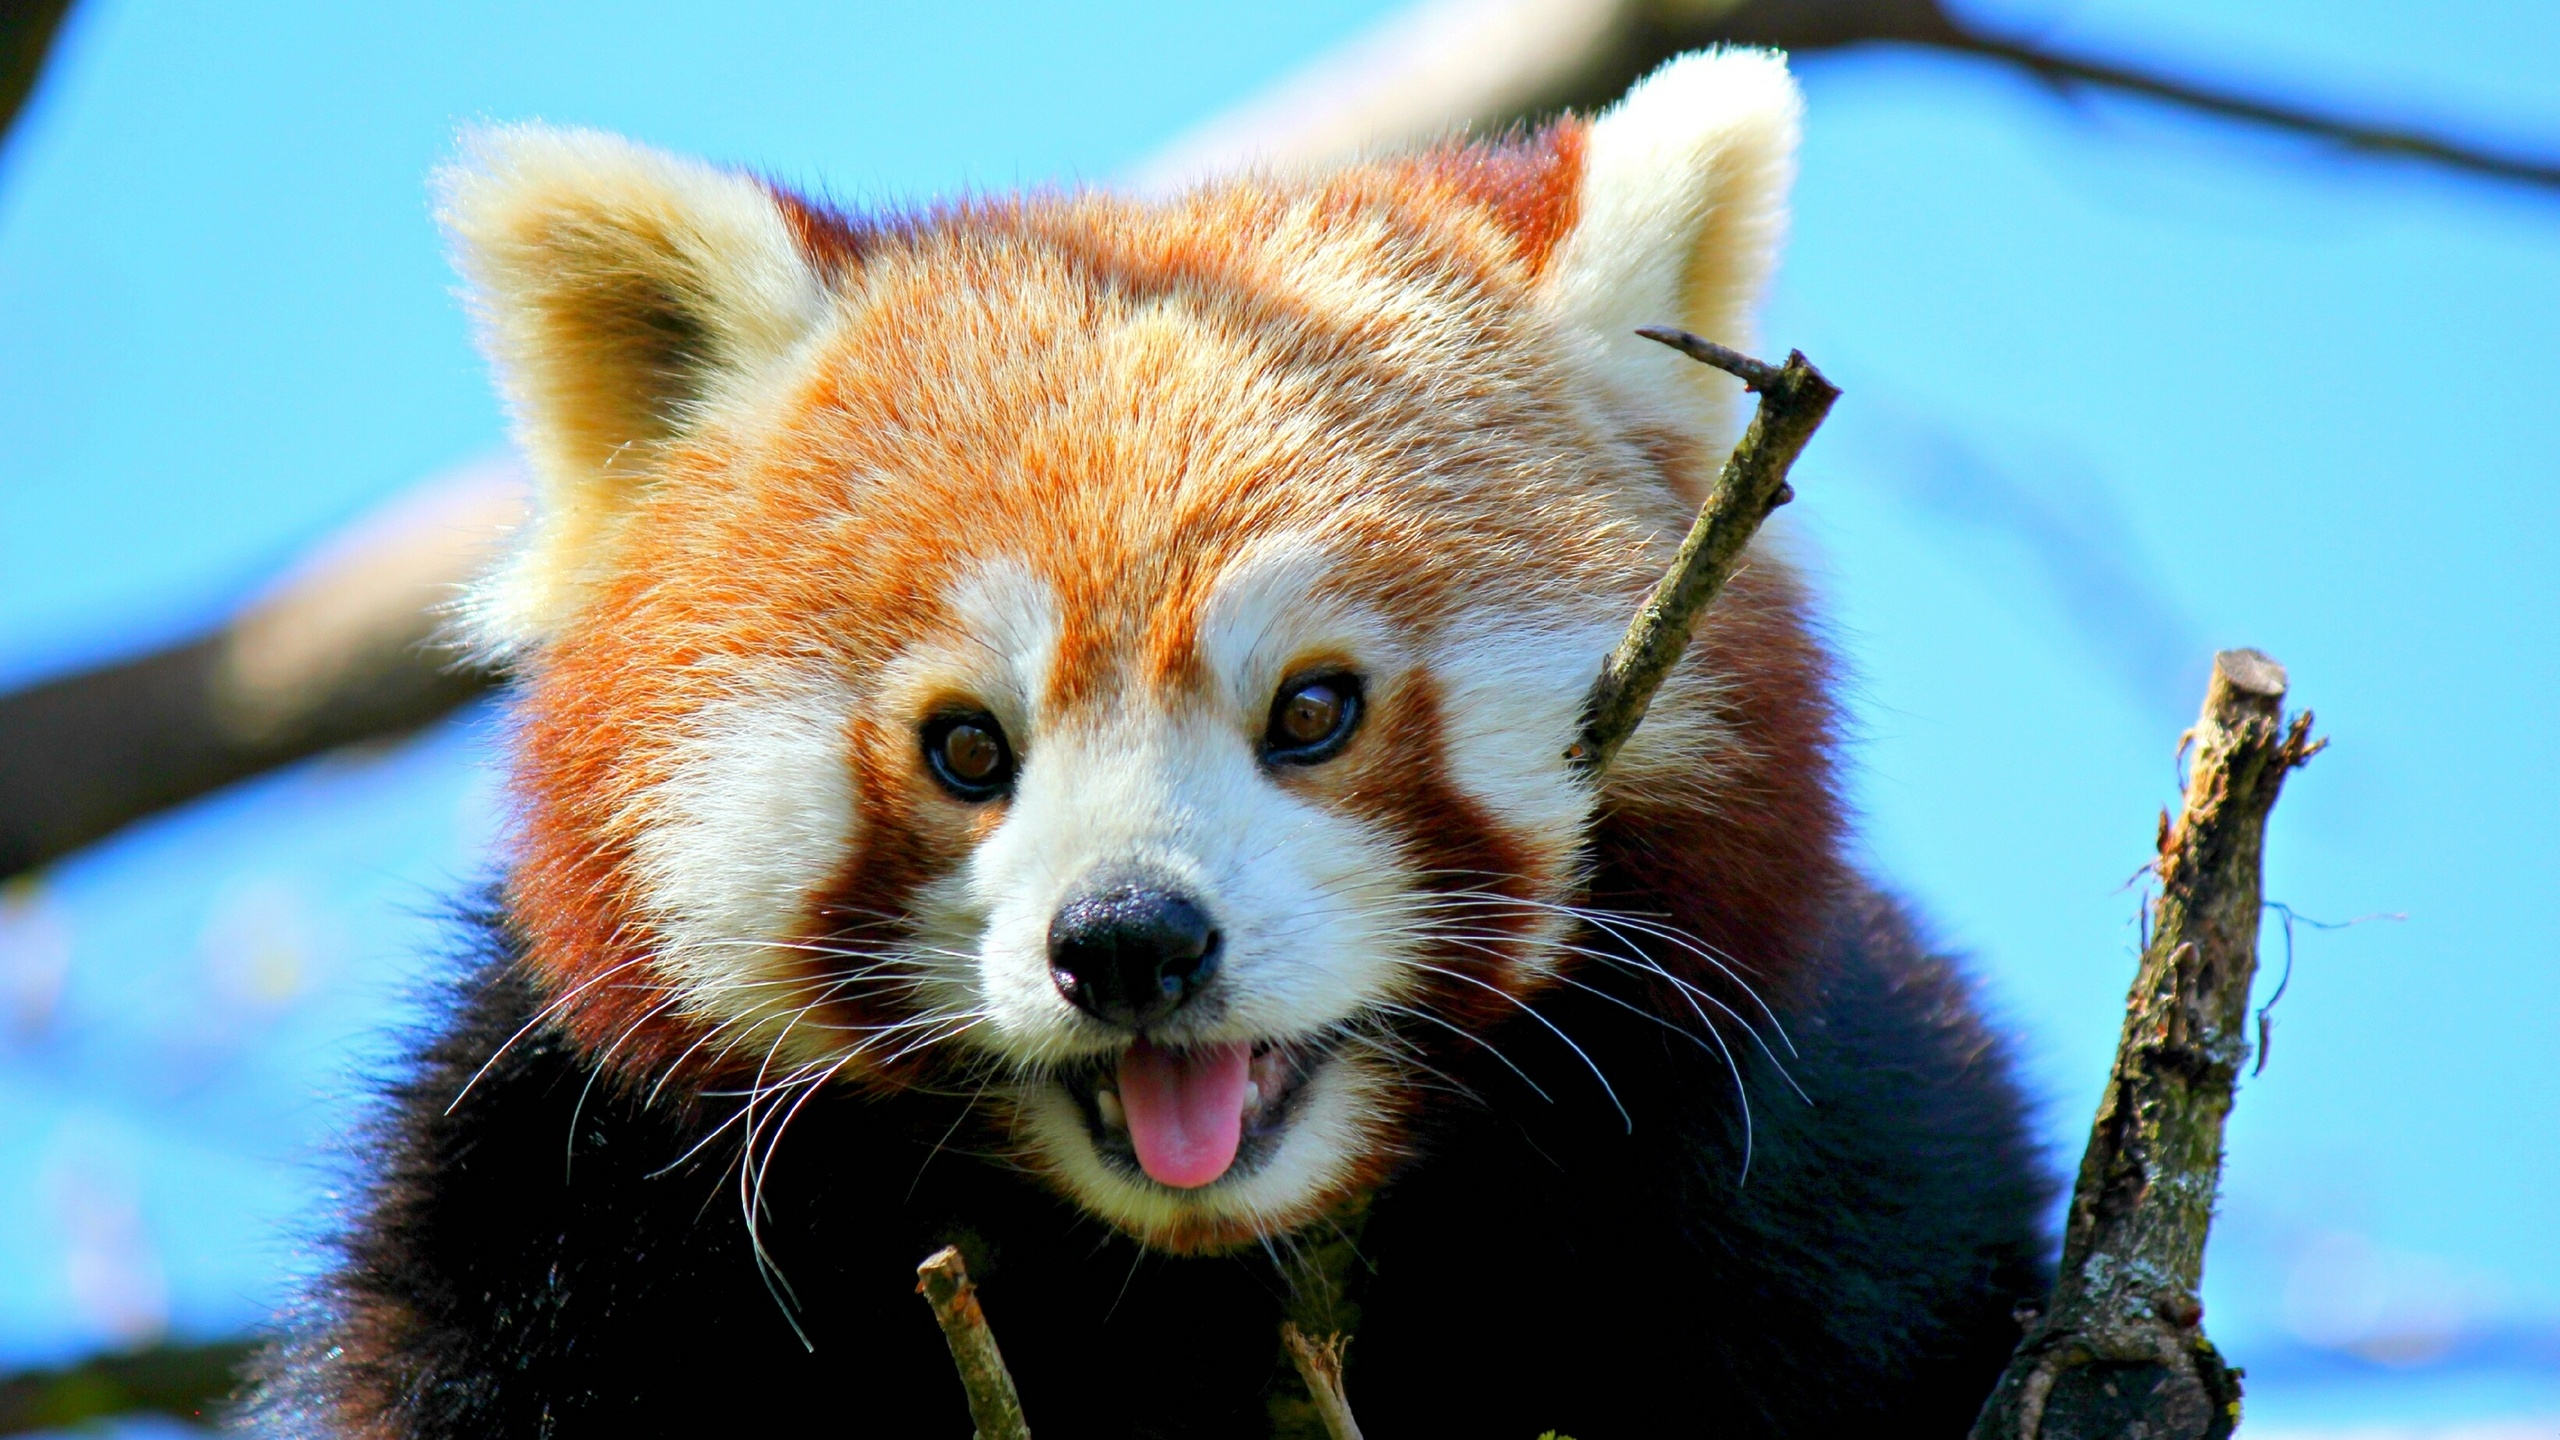 Red Panda Full HD Wallpaper and Background Image